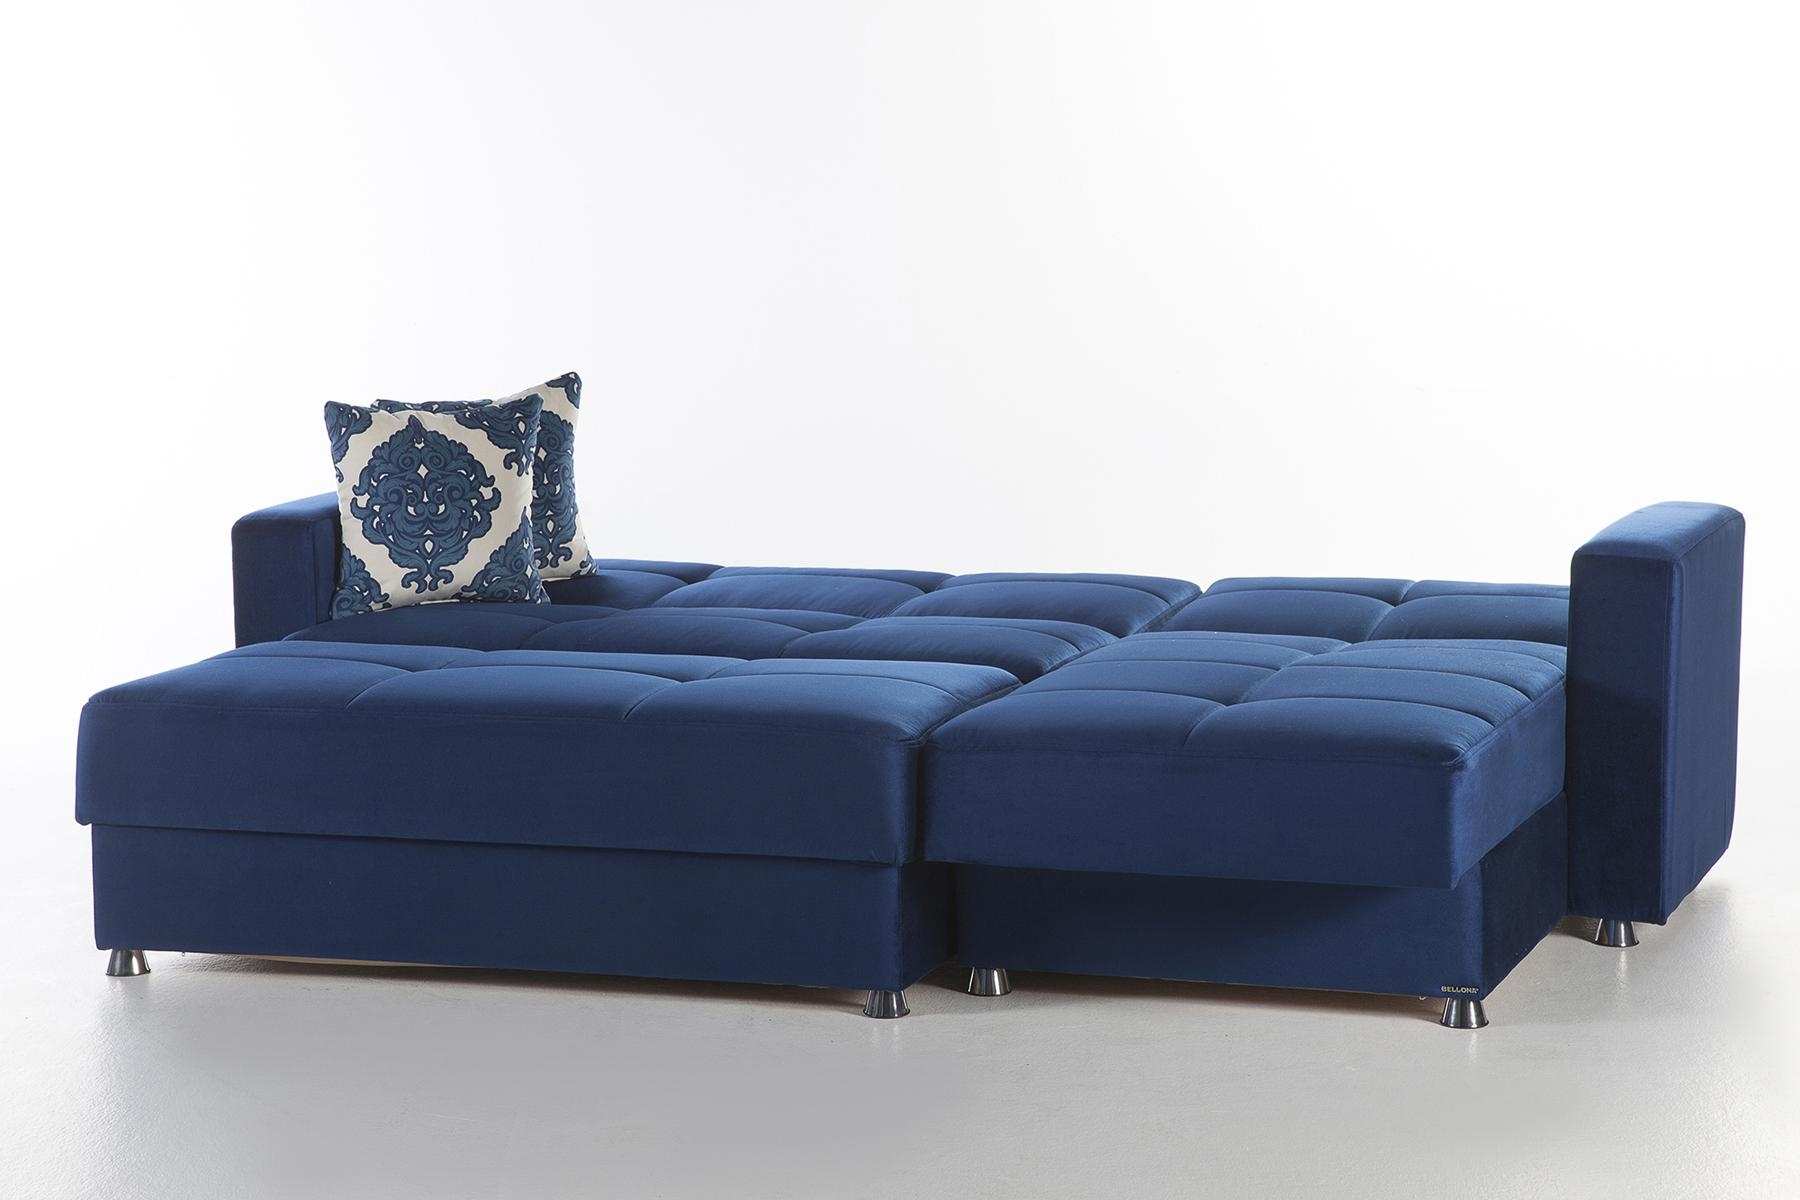 Elegant Roma Navy Sectional Sofasunset Pertaining To Elegant Sectional Sofa (Image 6 of 15)